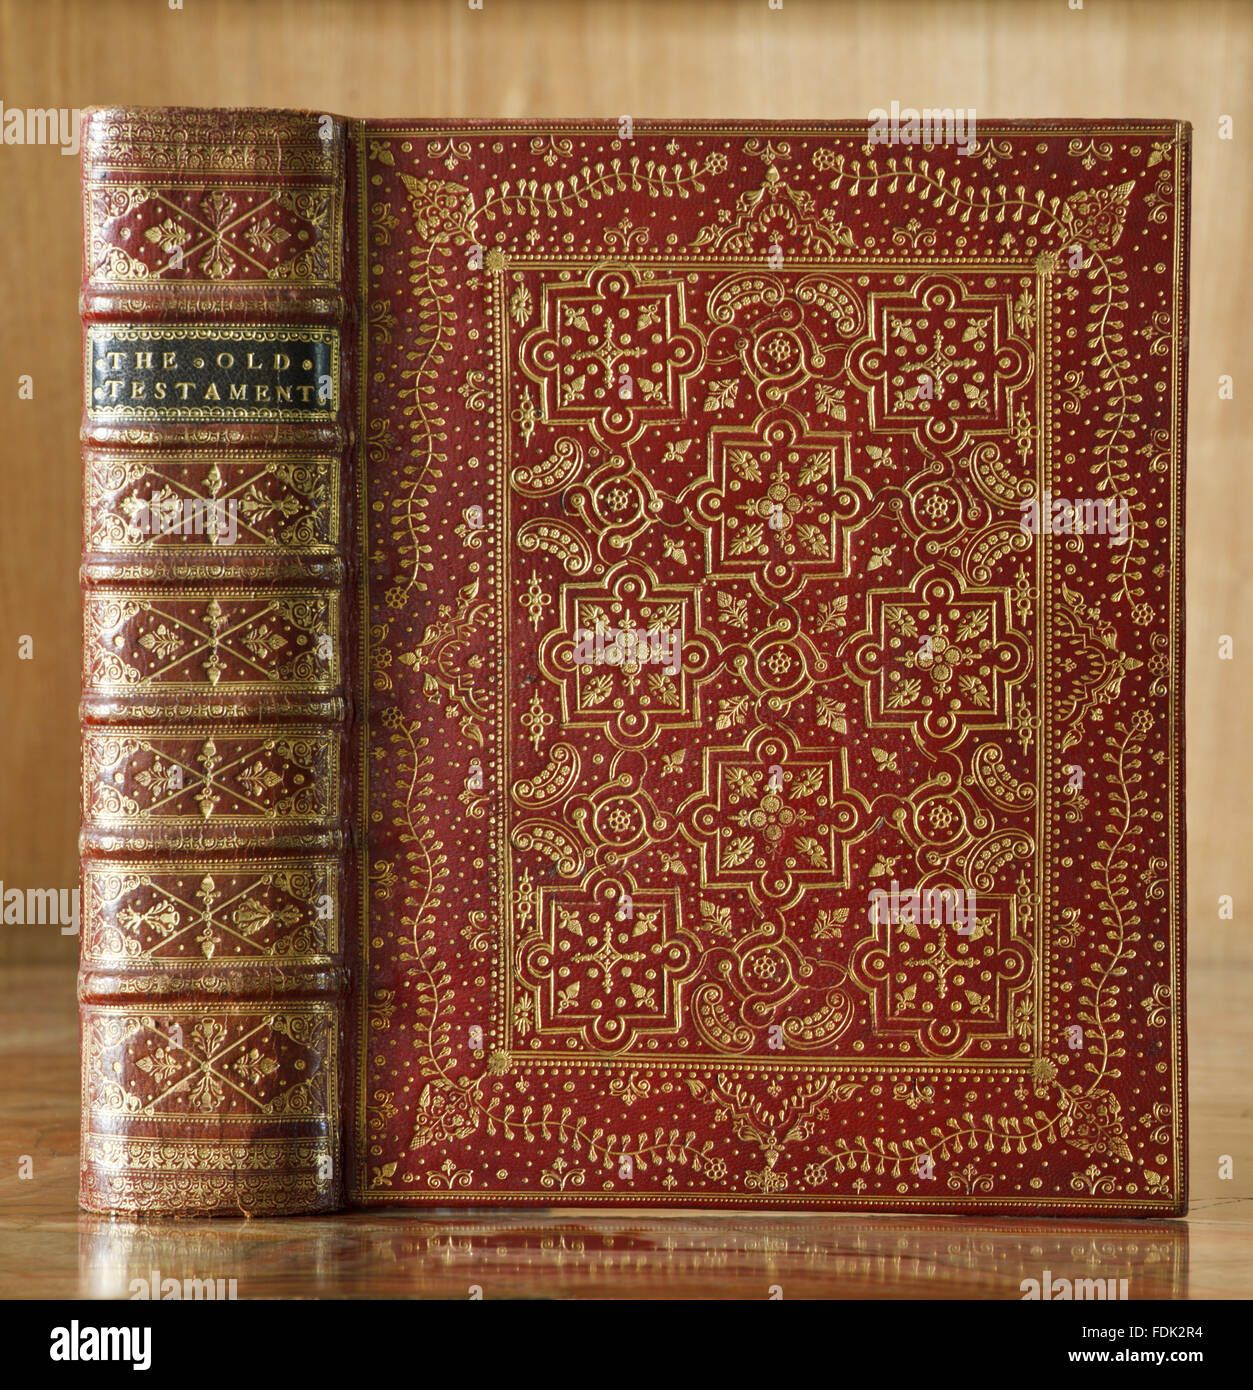 1712-13 bible with tooled red morocco binding, at Anglesey Abbey, Cambridgeshire. 17.I.16 - Stock Image